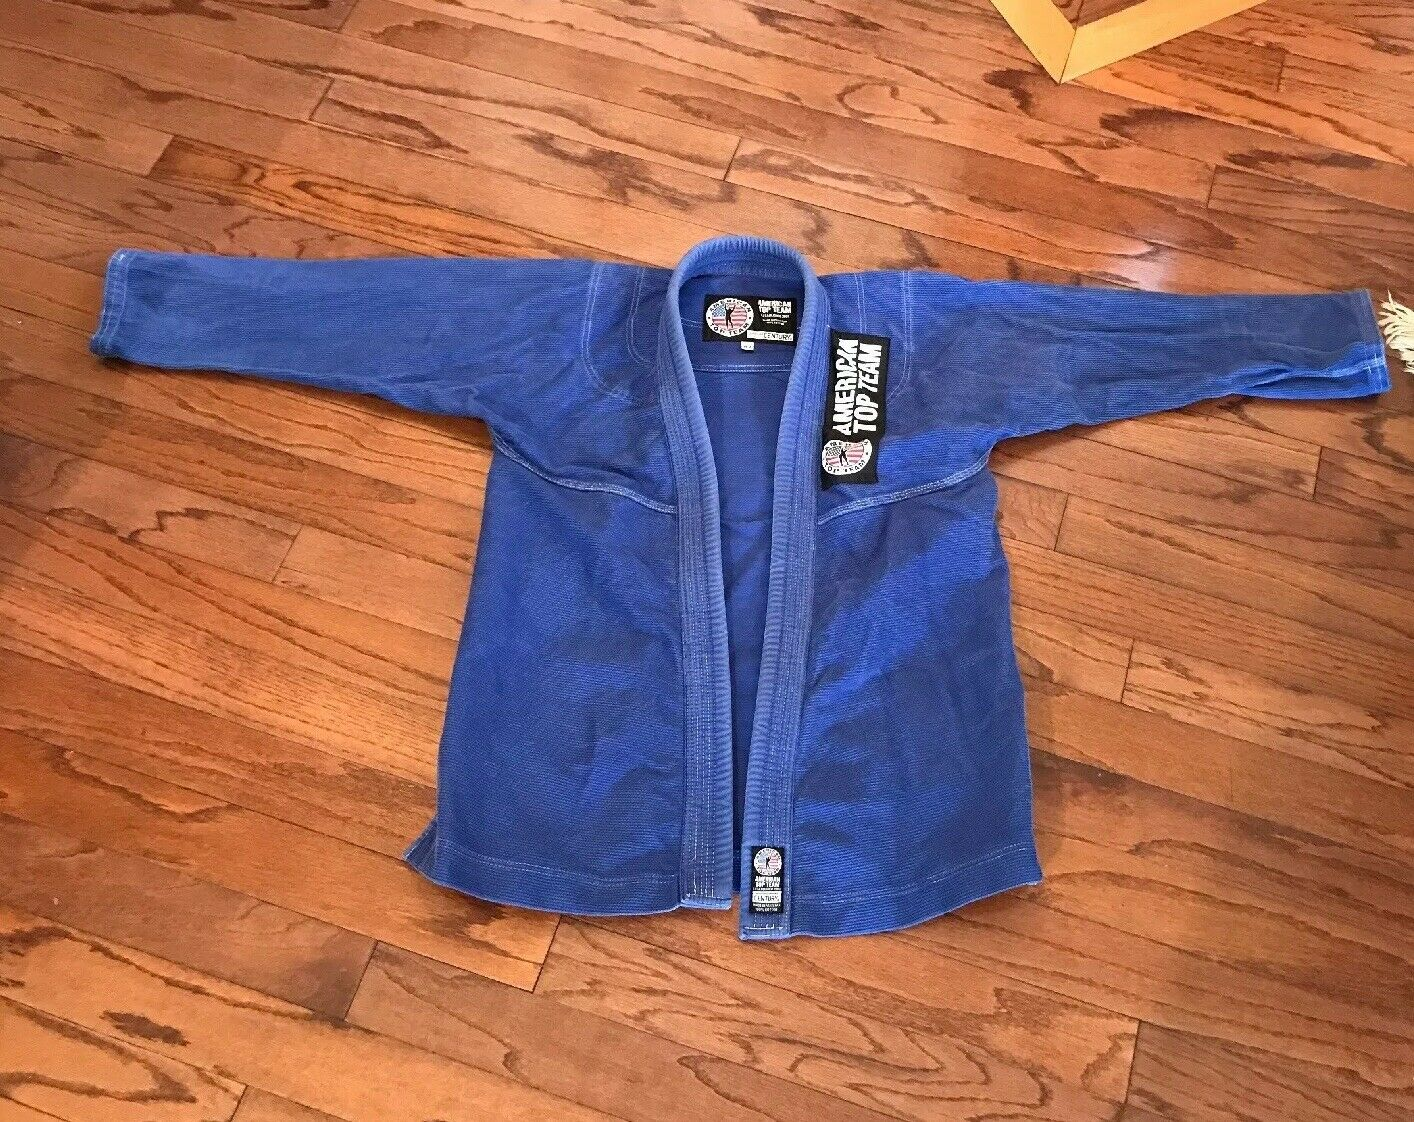 American  Top Team Gi sz A2  blueEJu Jitsu Mixed Martial Arts Embroidered Adult  hastened to see